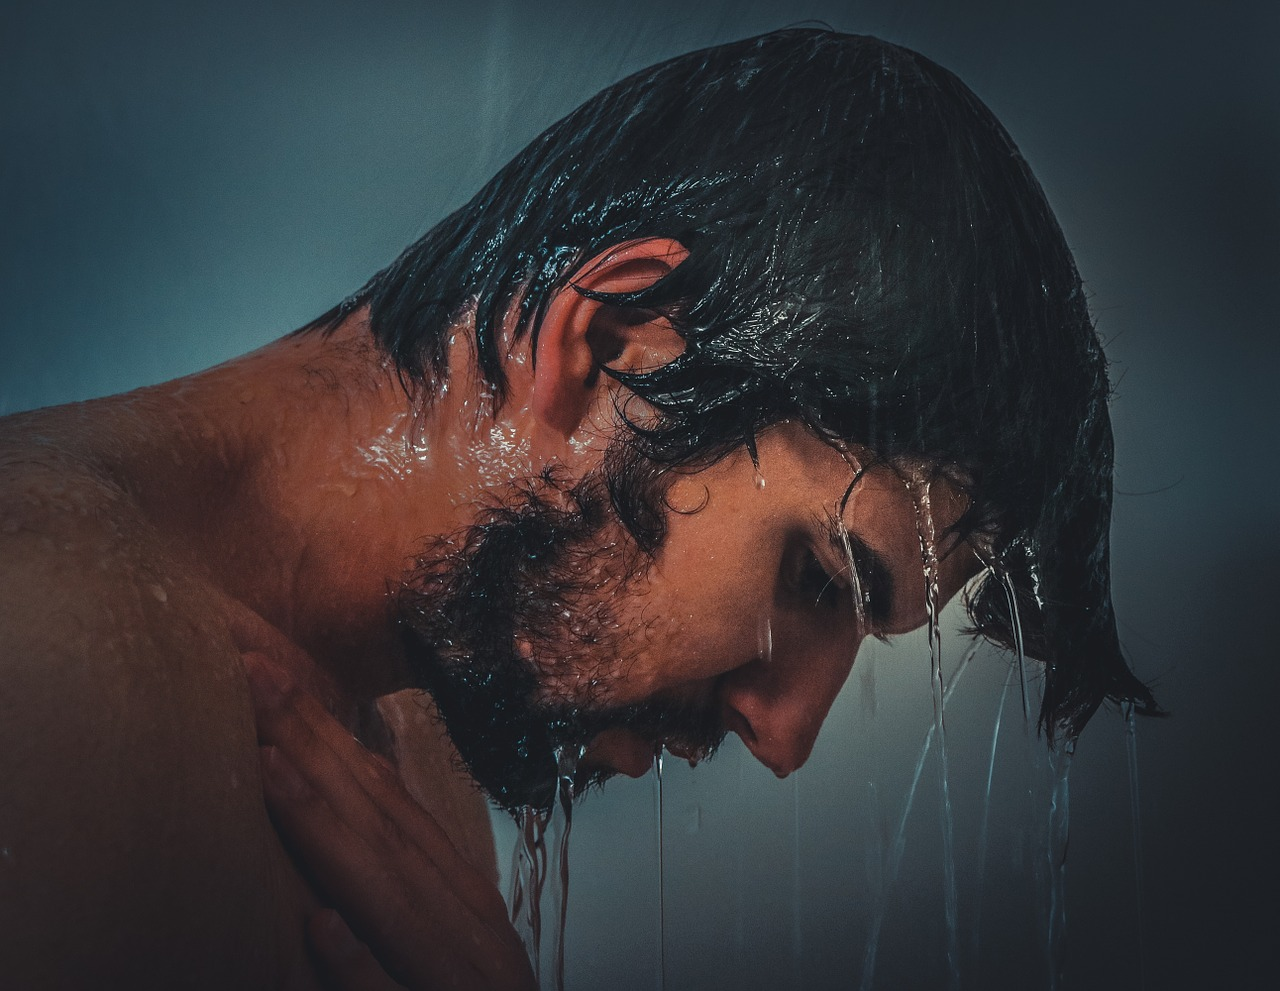 Cold shower - just add water